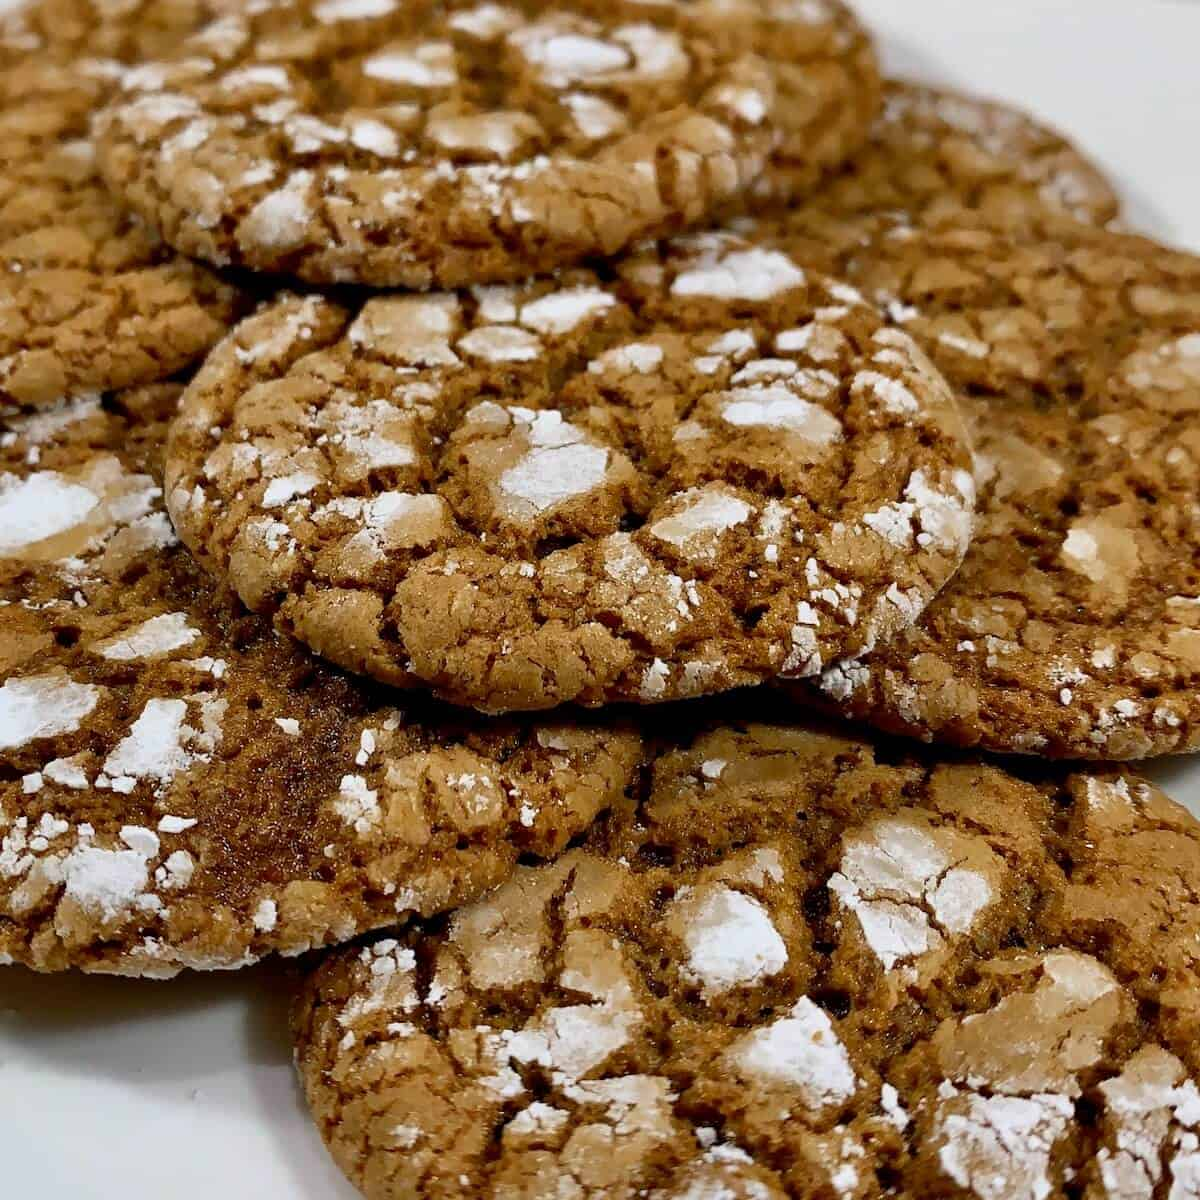 Stacked molasses cookies showing texture.